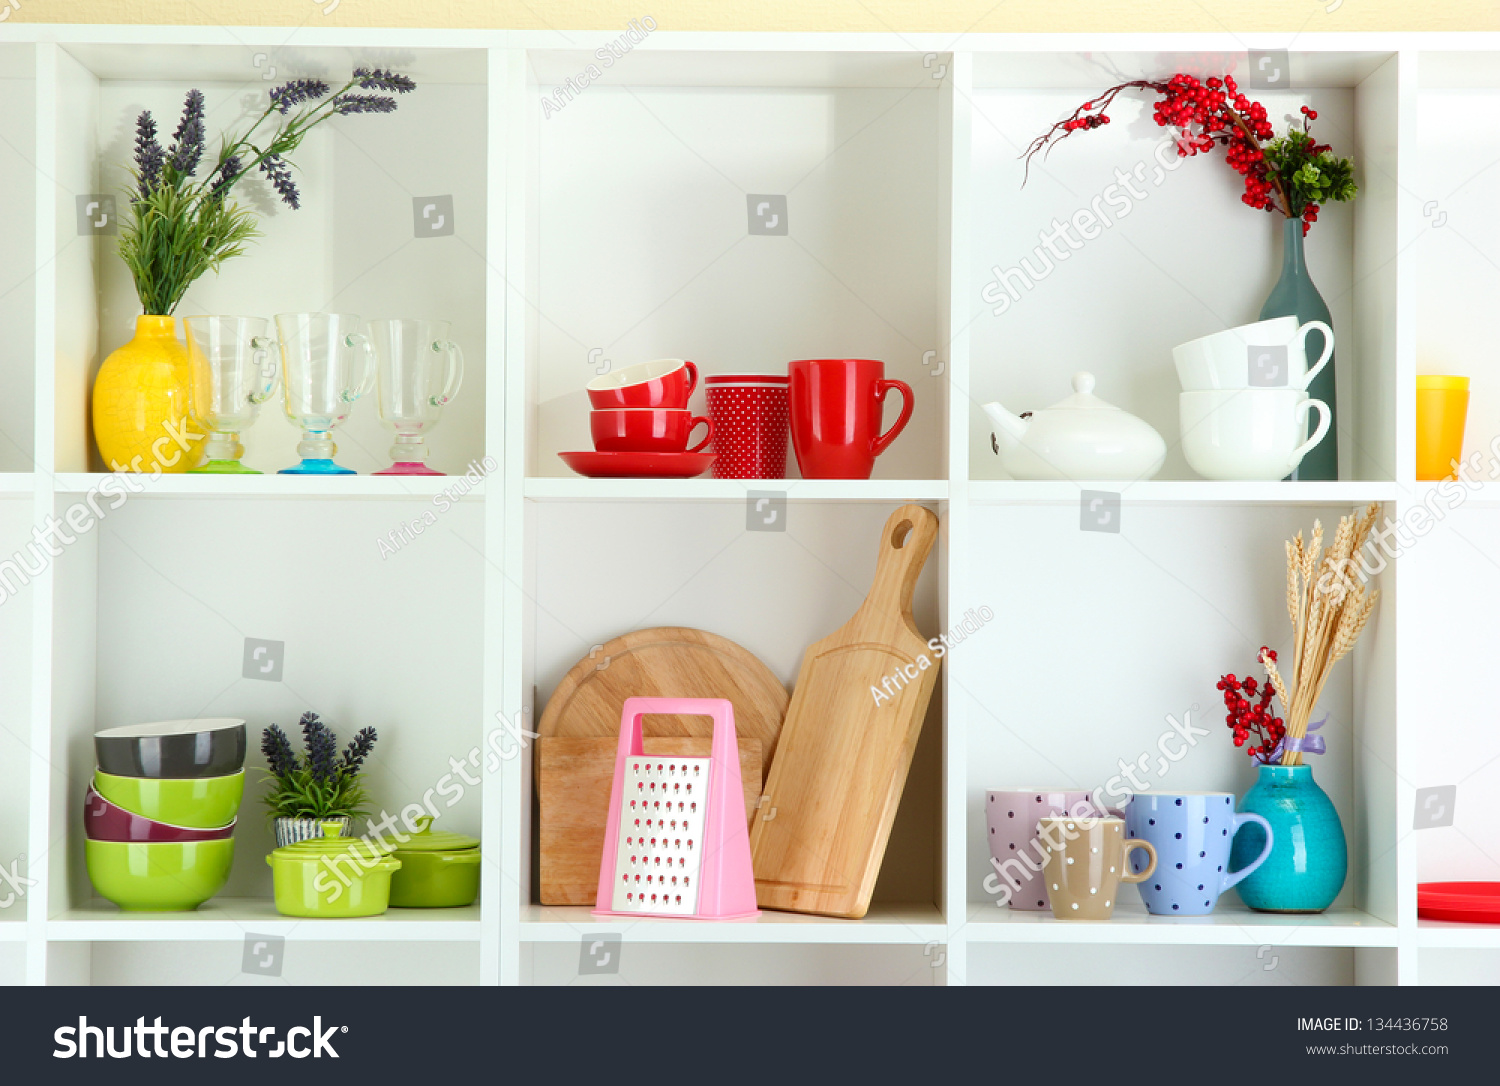 Beautiful white shelves with tableware and decor stock for Beautiful shelves images